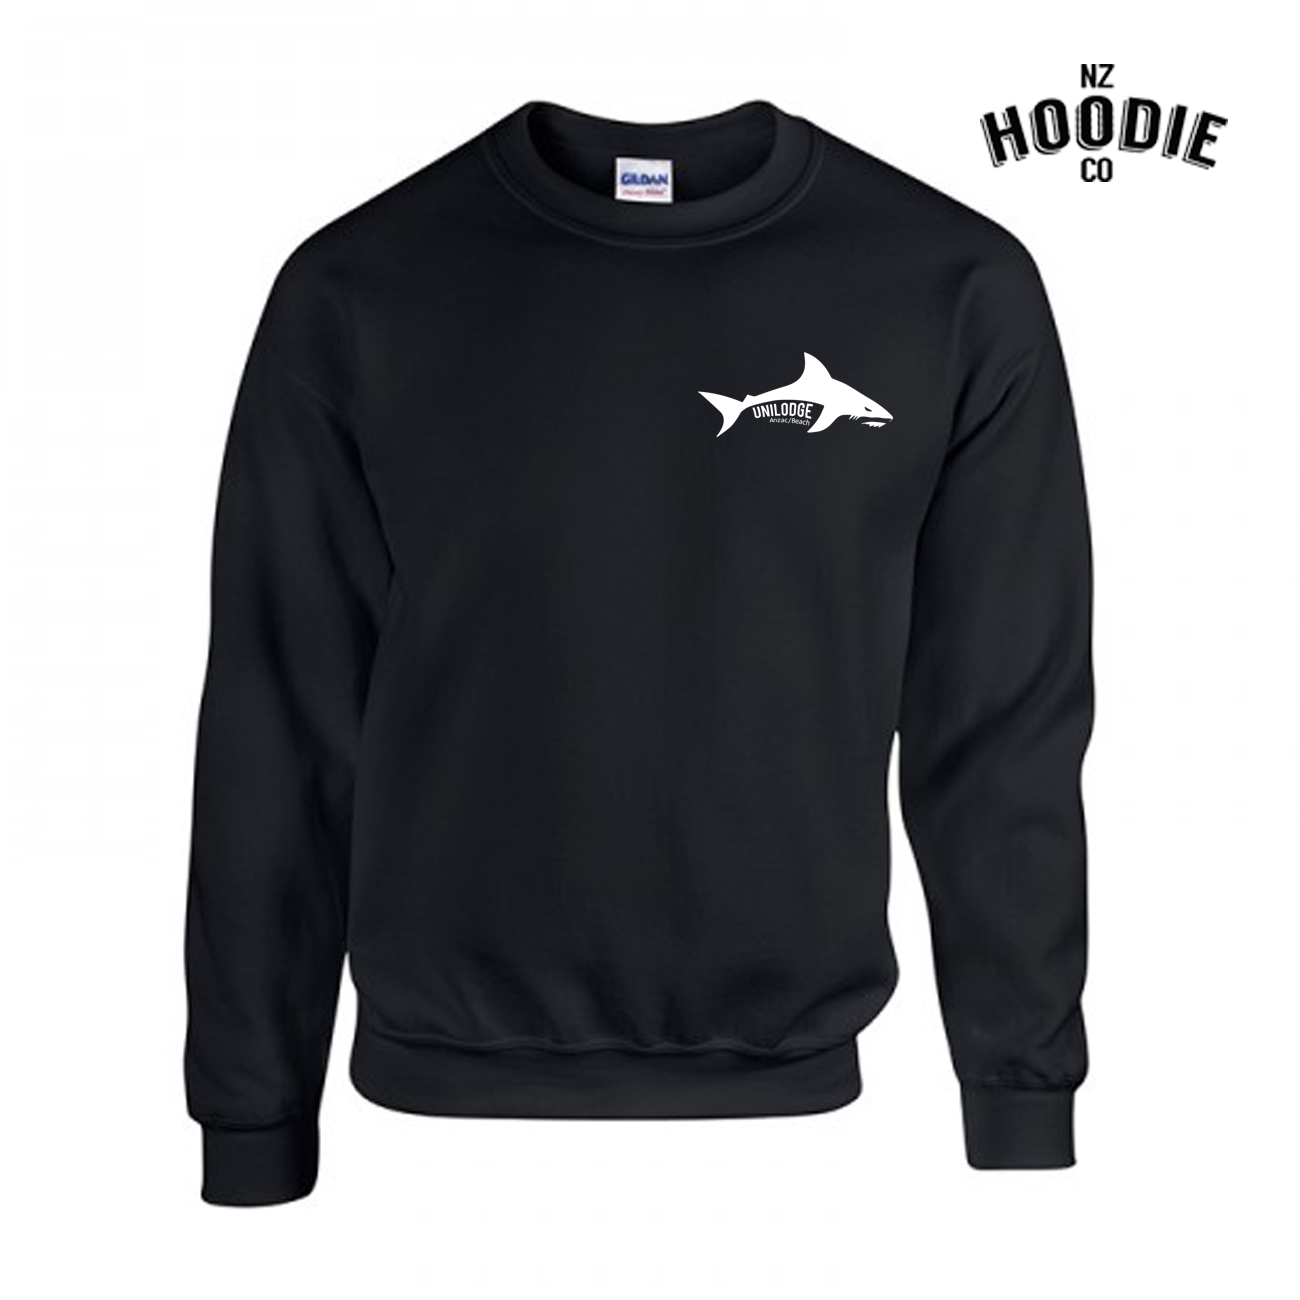 UniLodge Anzac Beach SHARK Gilden Neck Crew FRONT.jpg